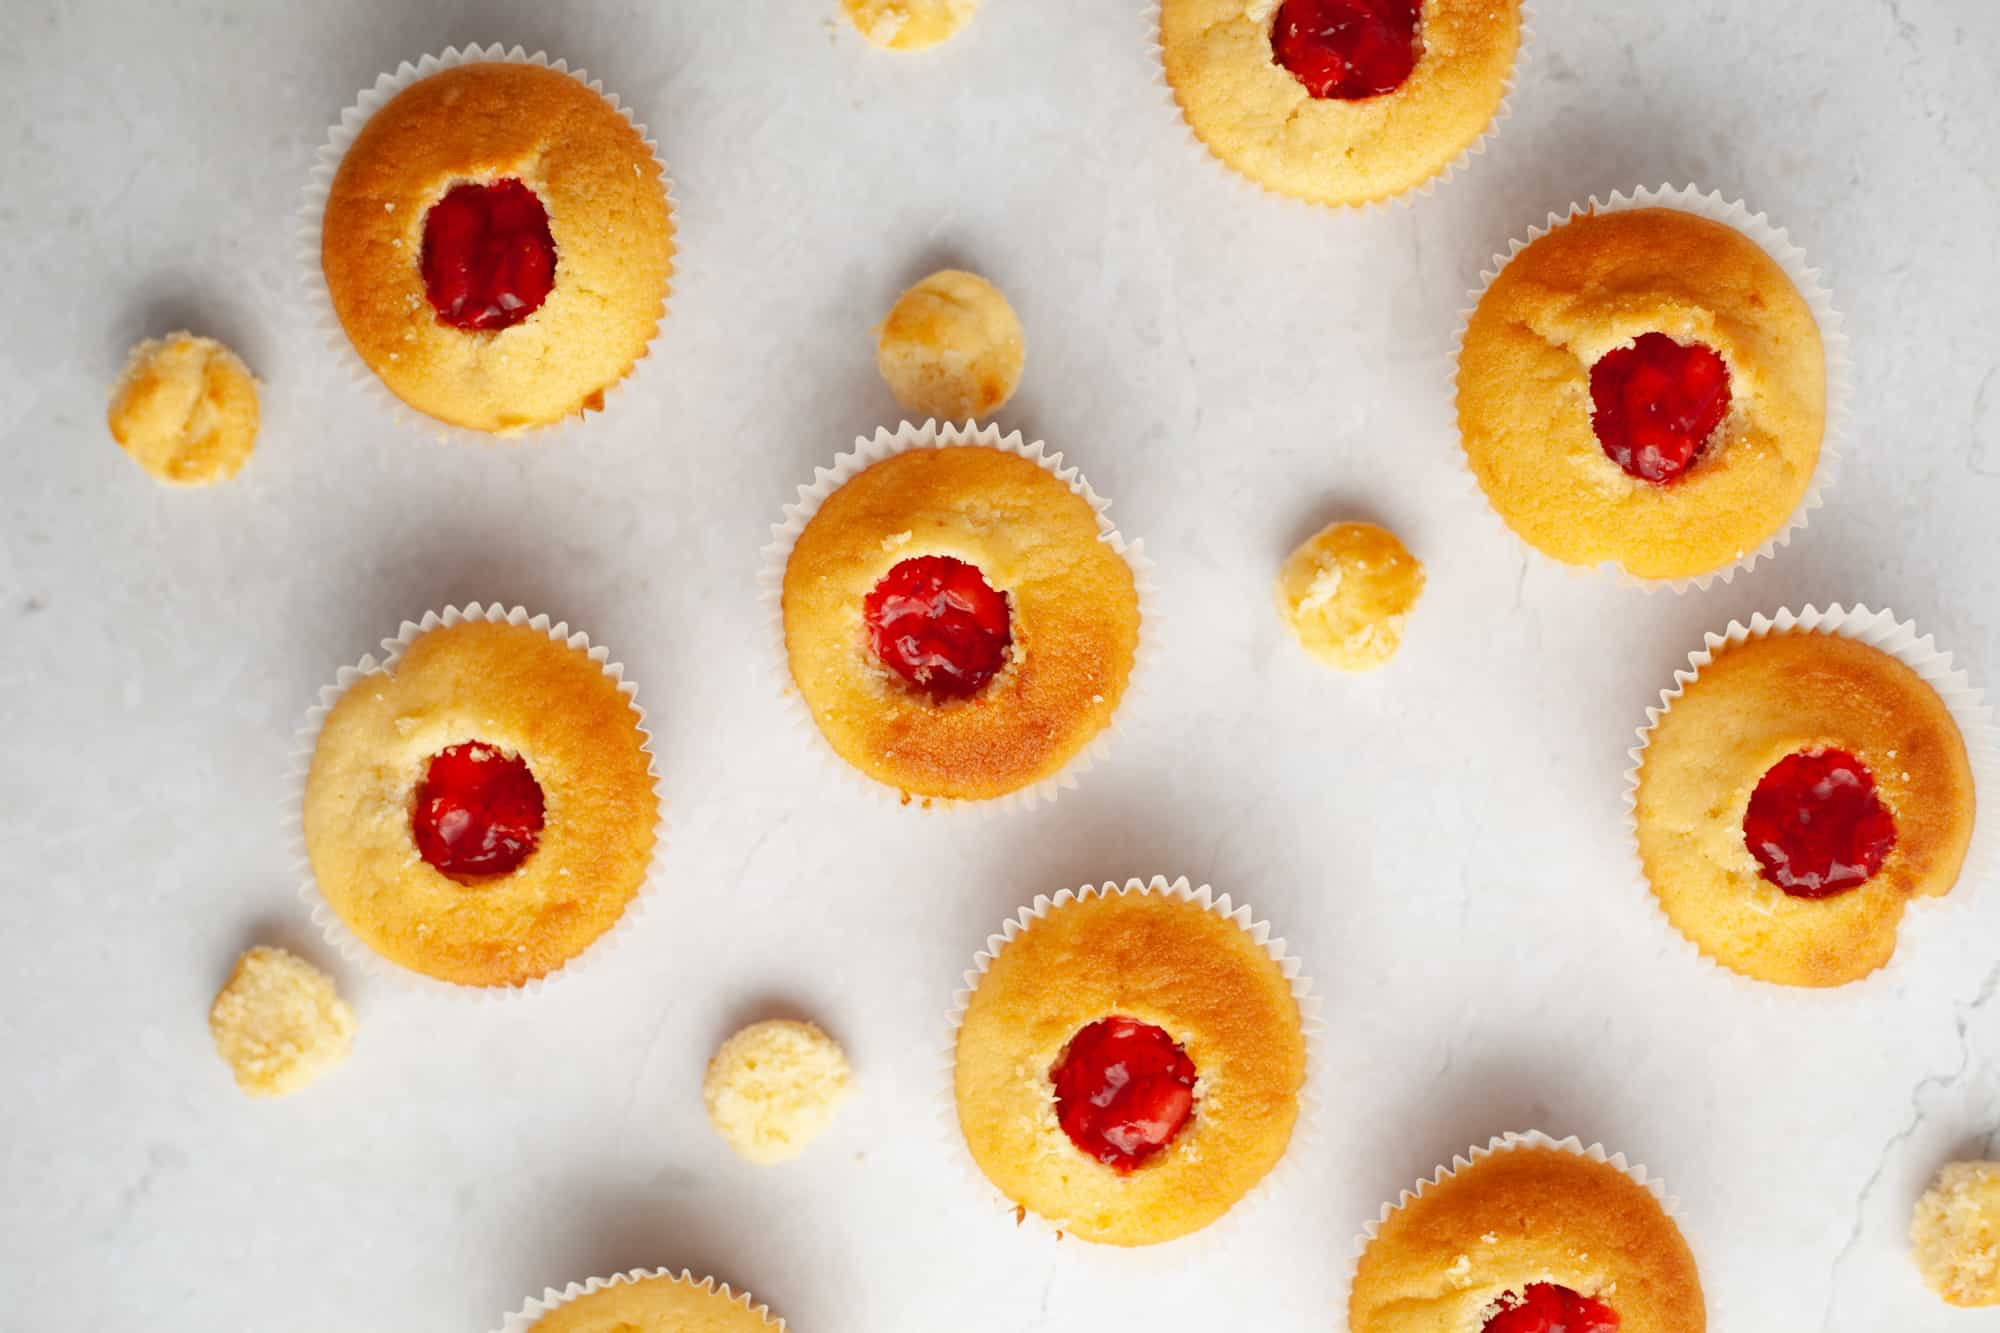 about seven yellow cupcakes, each has had a circle cut out and is filled with strawberry preserves